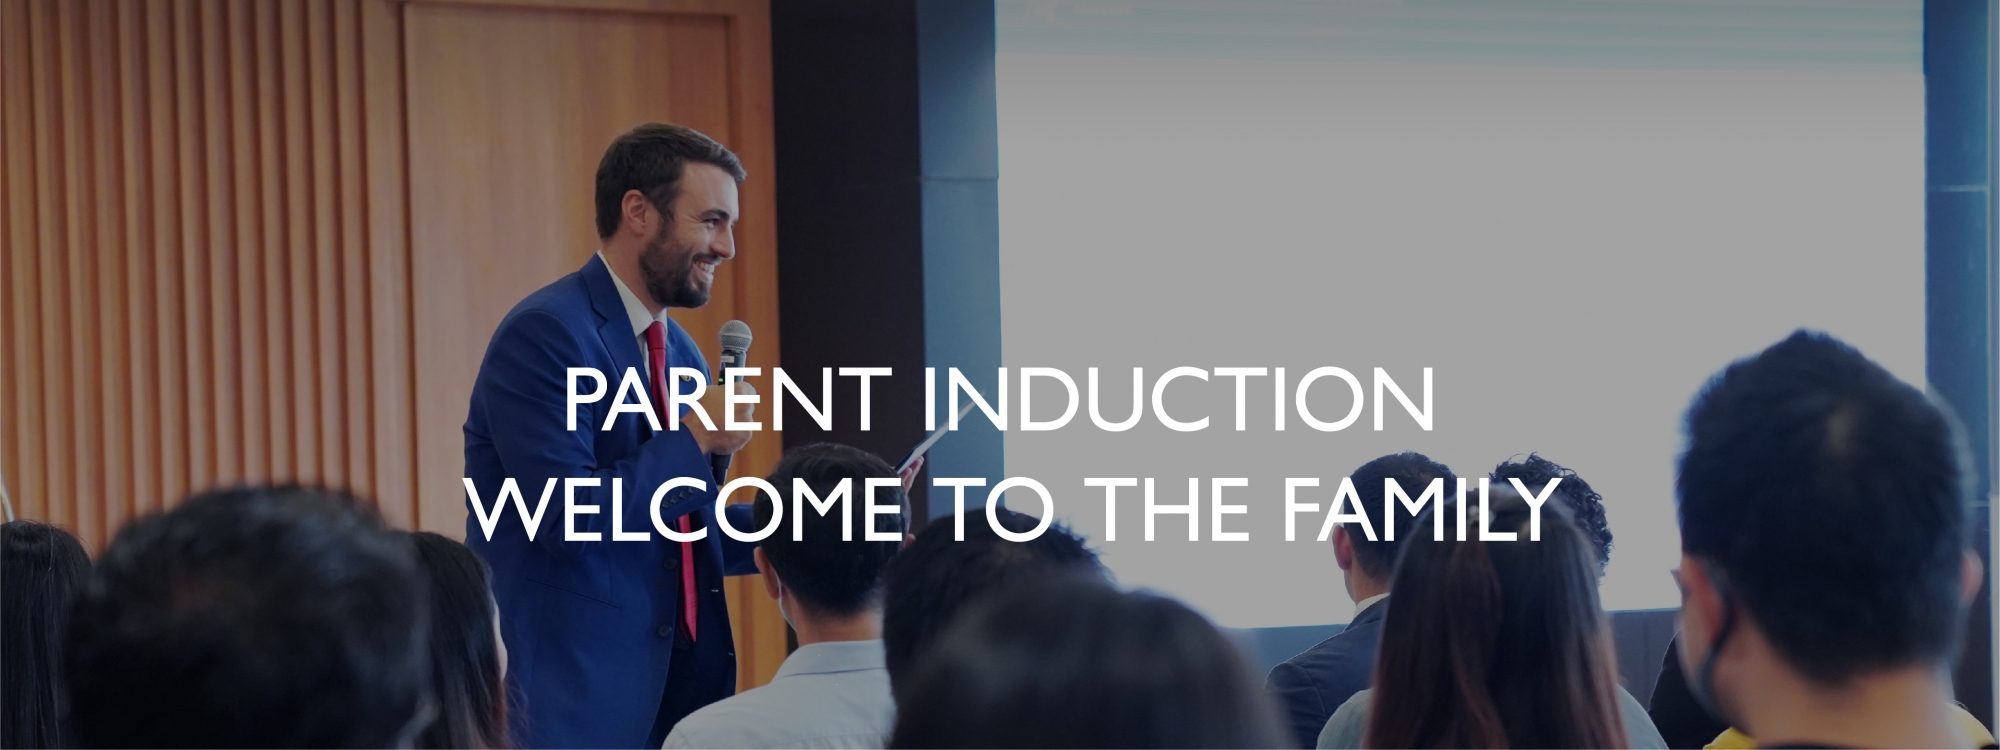 Parent Induction - Welcome to the Family of King's Bangkok